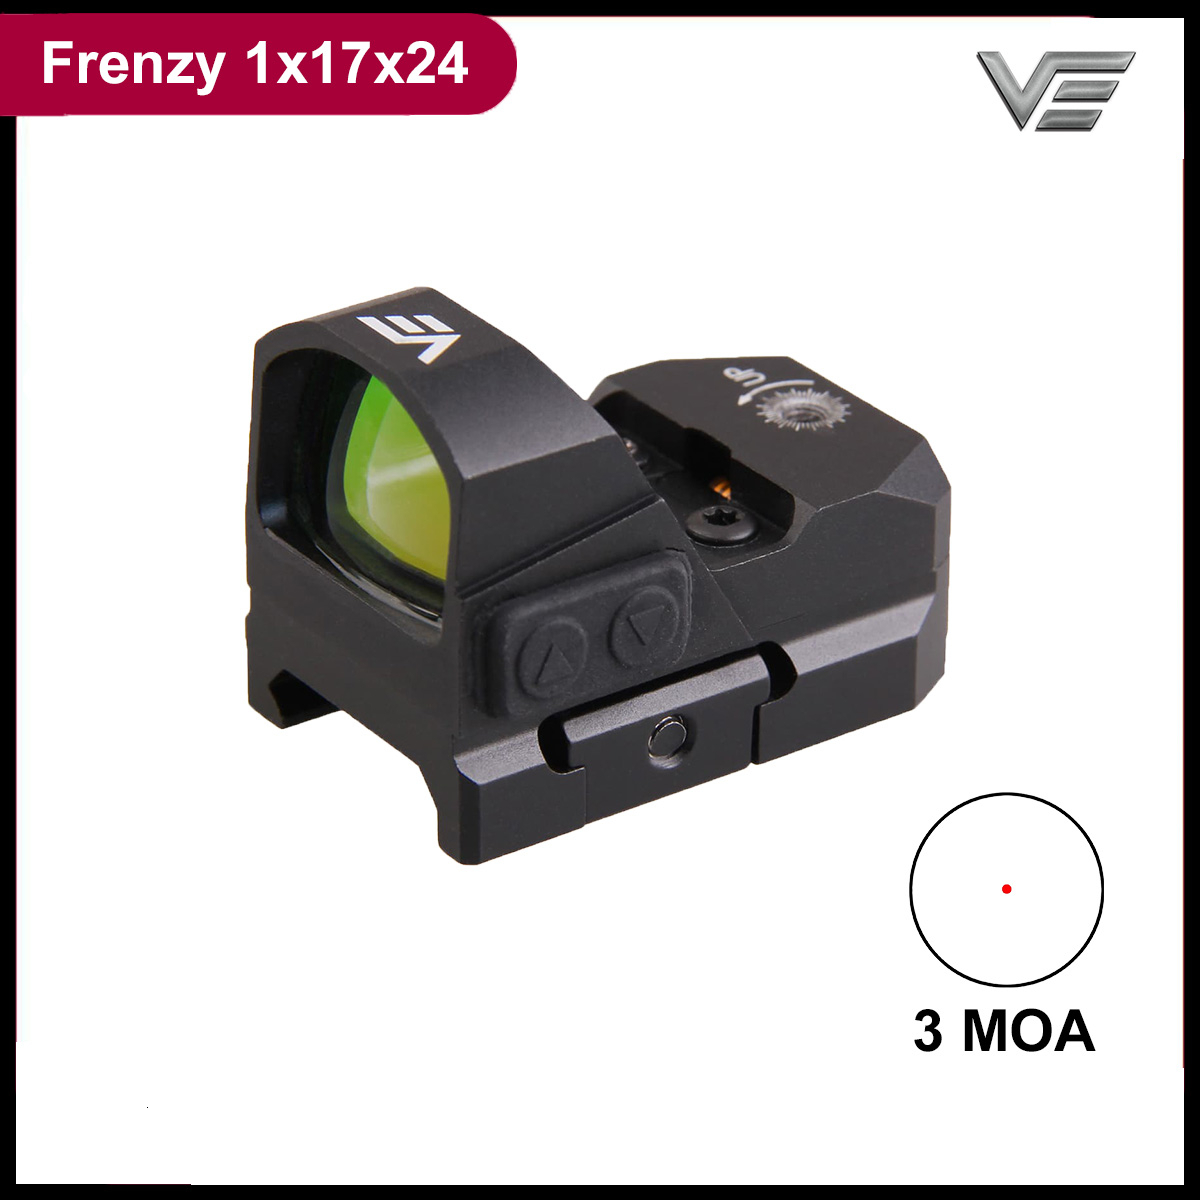 Vector Optics Frenzy 1x17x24 AR15 M4 AK47 Pistol Red Dot Scope 9mm Mini Sight With Water Proof Fit 21mm Picatinny GLOCK 17 19